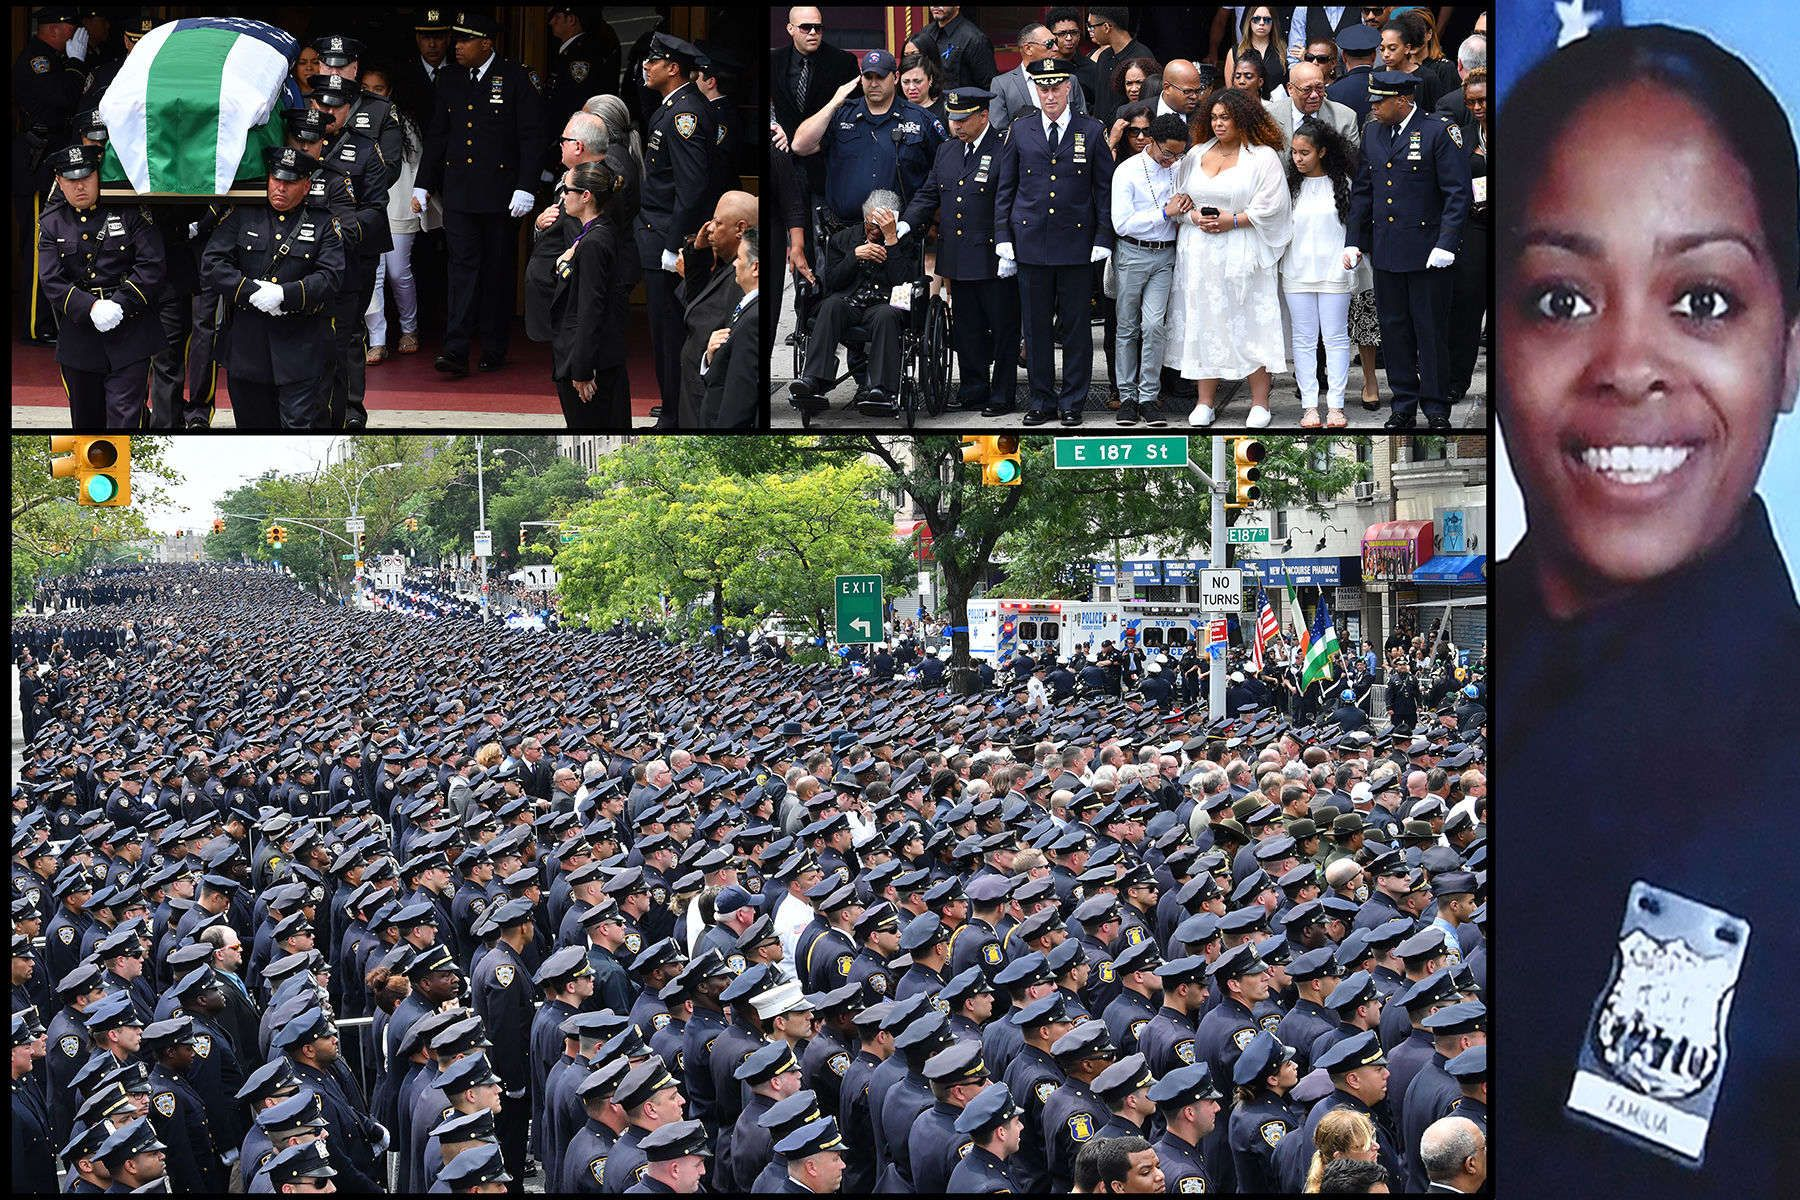 NYPD funeral for police officer Miosotis Familia